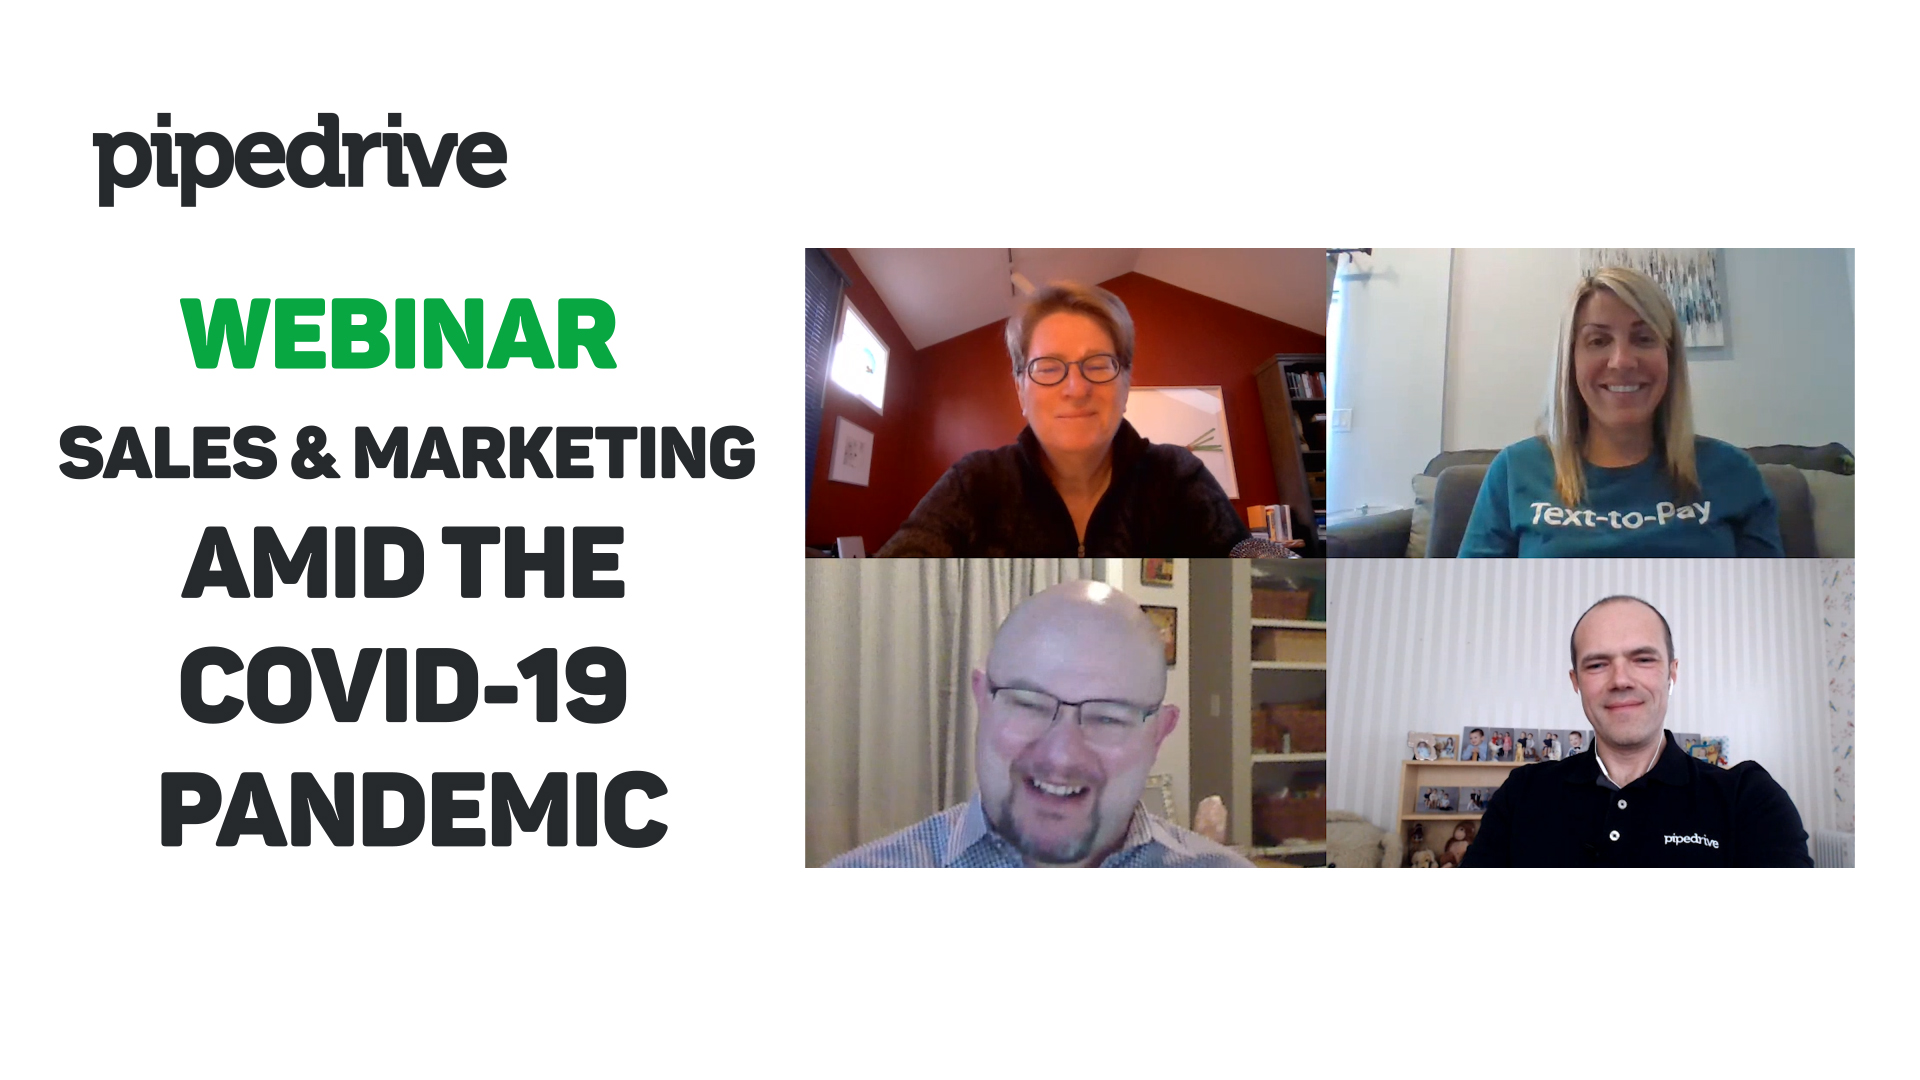 Sales and marketing amid the COVID-19 epidemic